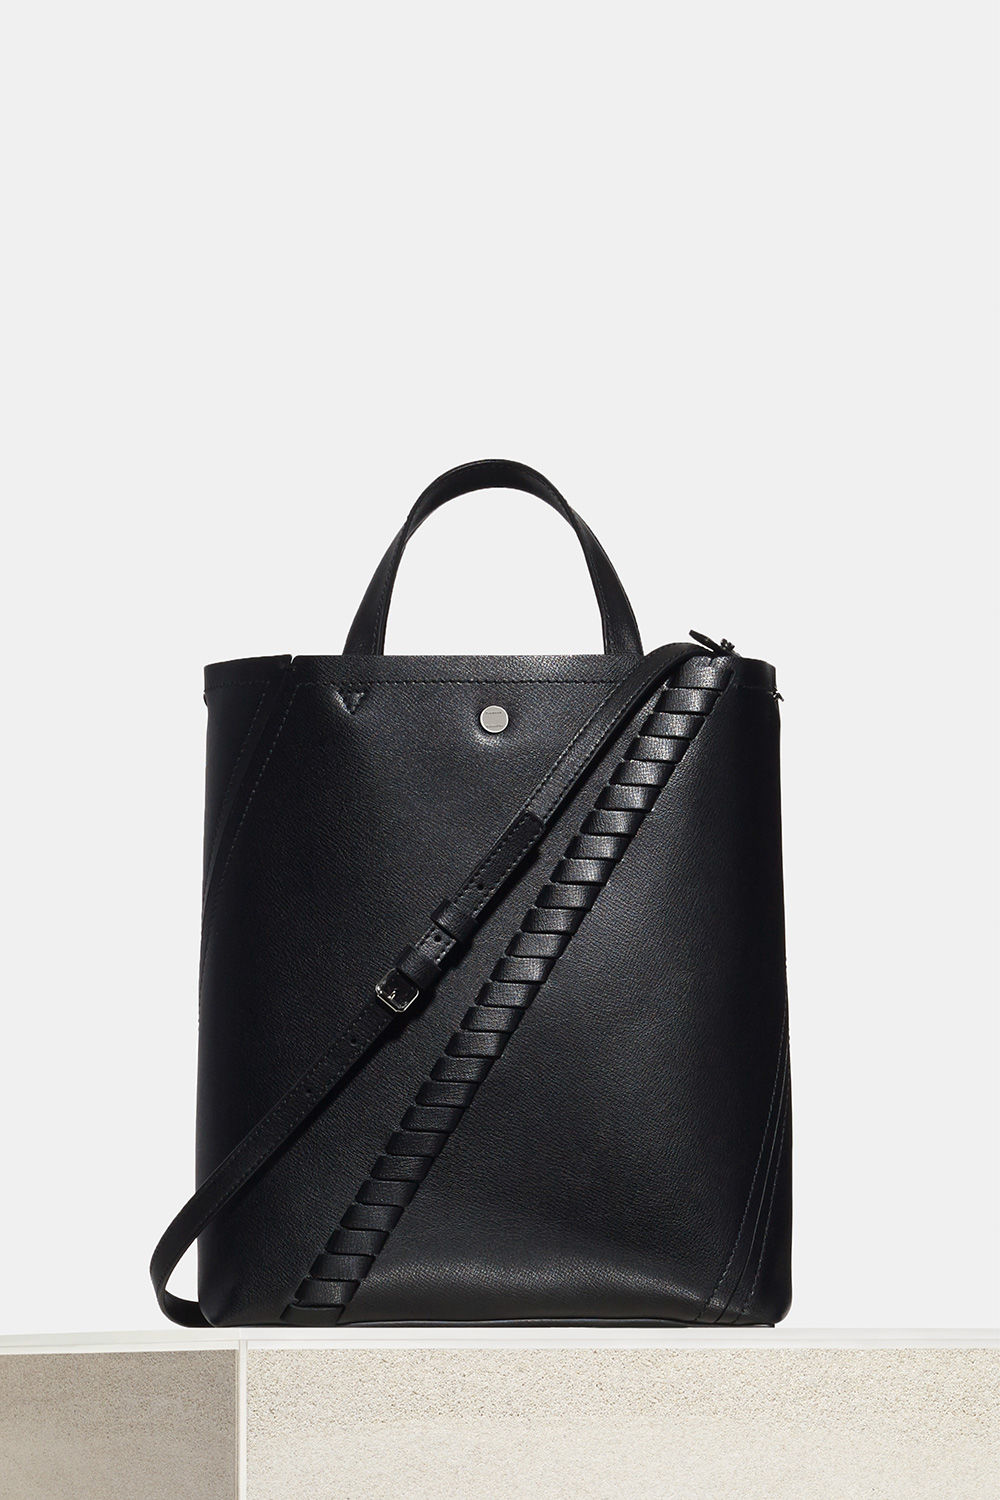 proenza schouler spring 2018 black mini grain leather hex tote bag